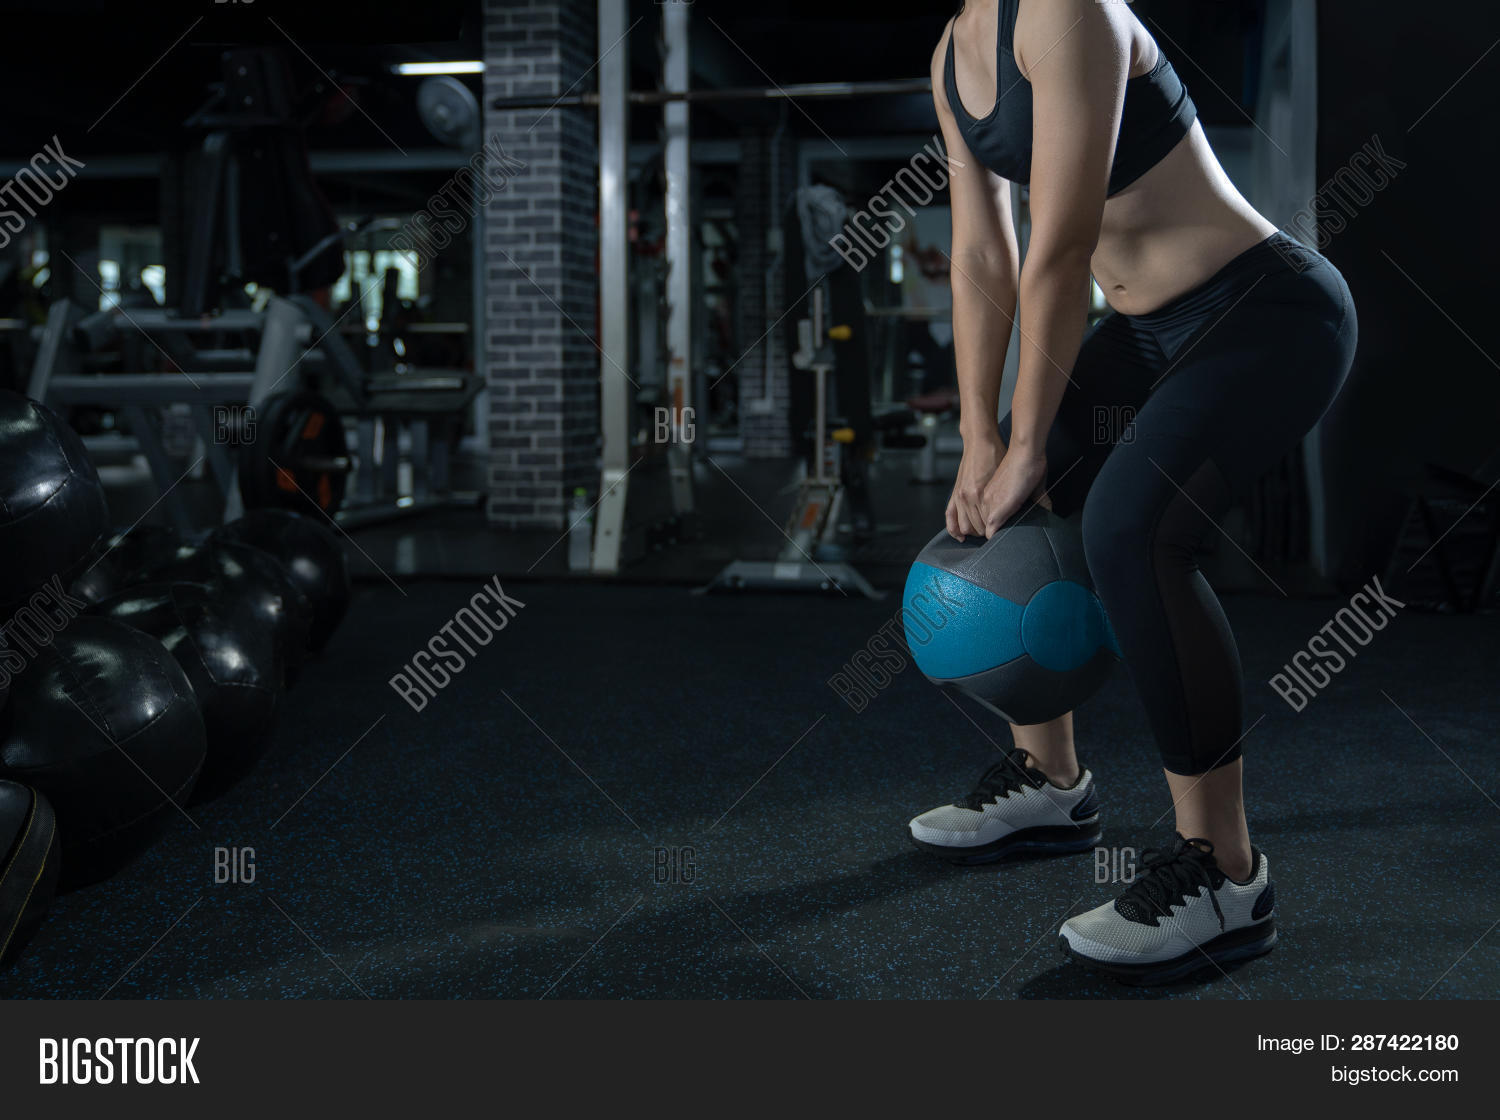 Woman Exercise Workout Image & Photo (Free Trial) | Bigstock